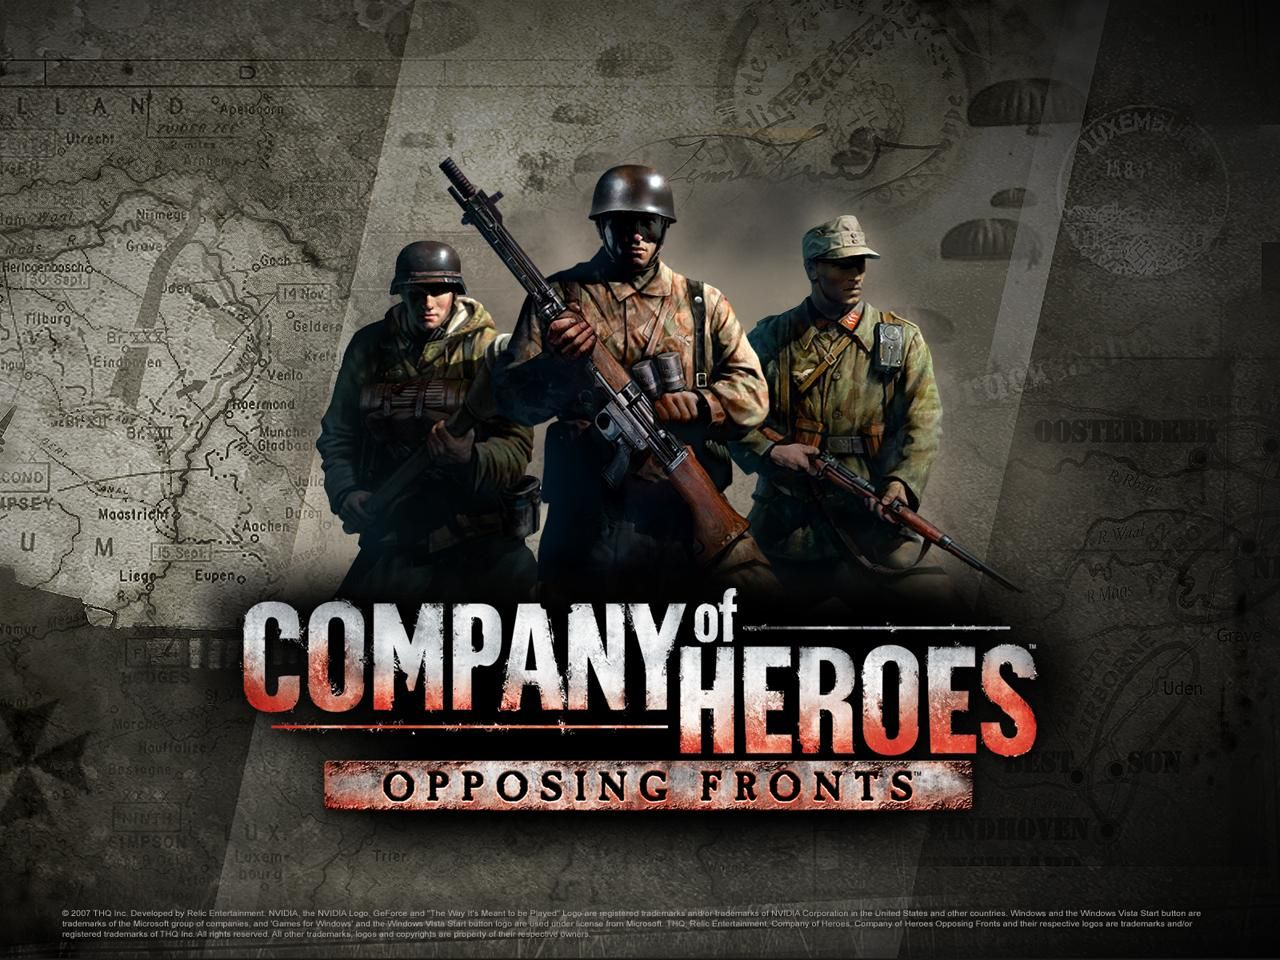 Company-Heroes-Opposing-Fronts-1.jpg